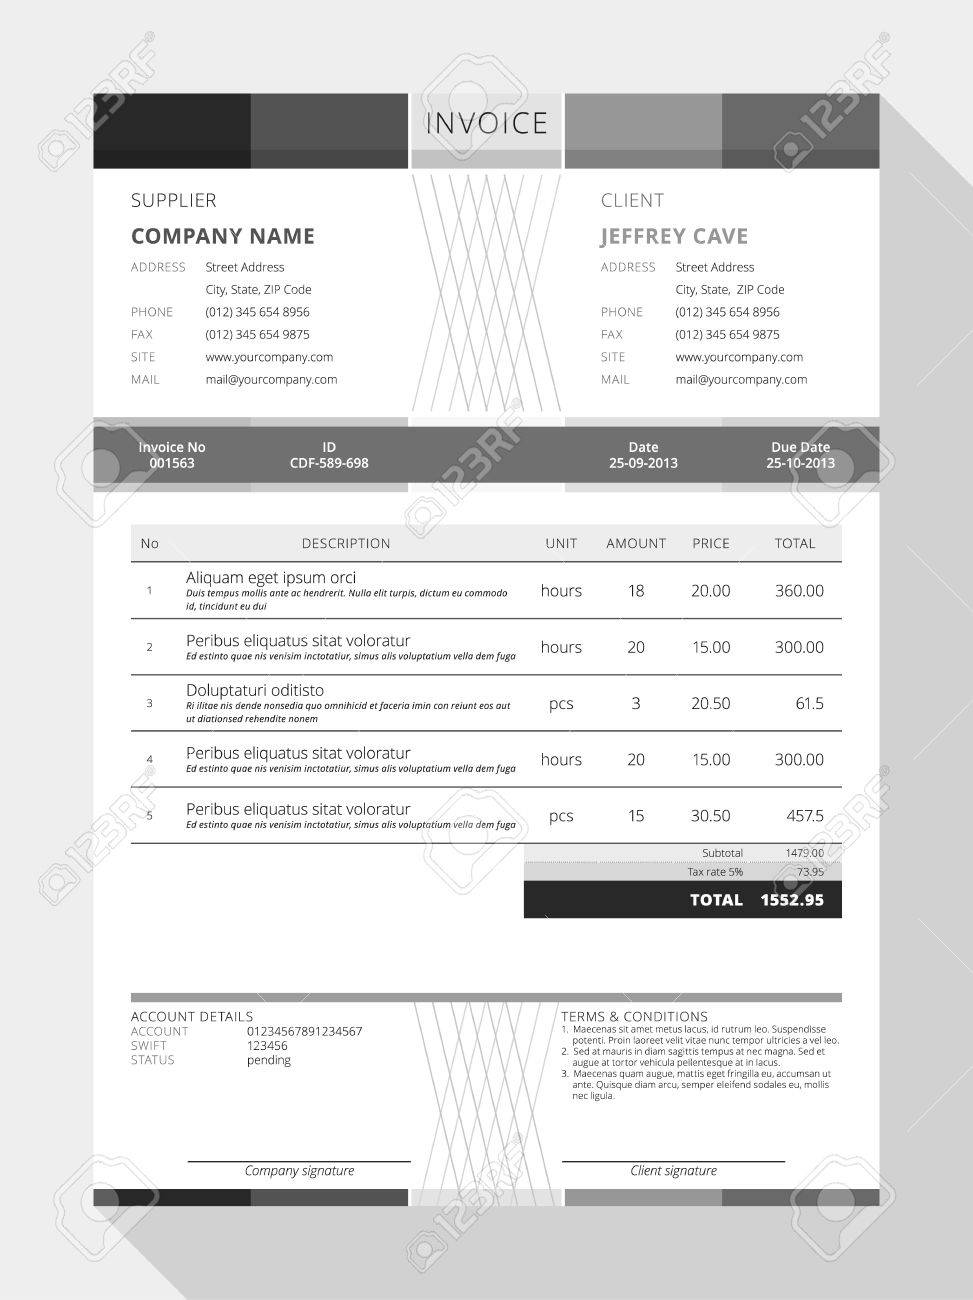 Usdgus  Splendid Design An Invoice  Professional Graphic Design Invoice  With Magnificent Vector Customizable Invoice Form Template Design Vector   Design An Invoice With Divine Pro Forma Invoices And Vat Also Tenant Invoice In Addition Invoice Format Sample And Performa Invoice Template As Well As Recurring Invoicing Additionally Invoice For Car Sale From Happytomco With Usdgus  Magnificent Design An Invoice  Professional Graphic Design Invoice  With Divine Vector Customizable Invoice Form Template Design Vector   Design An Invoice And Splendid Pro Forma Invoices And Vat Also Tenant Invoice In Addition Invoice Format Sample From Happytomco